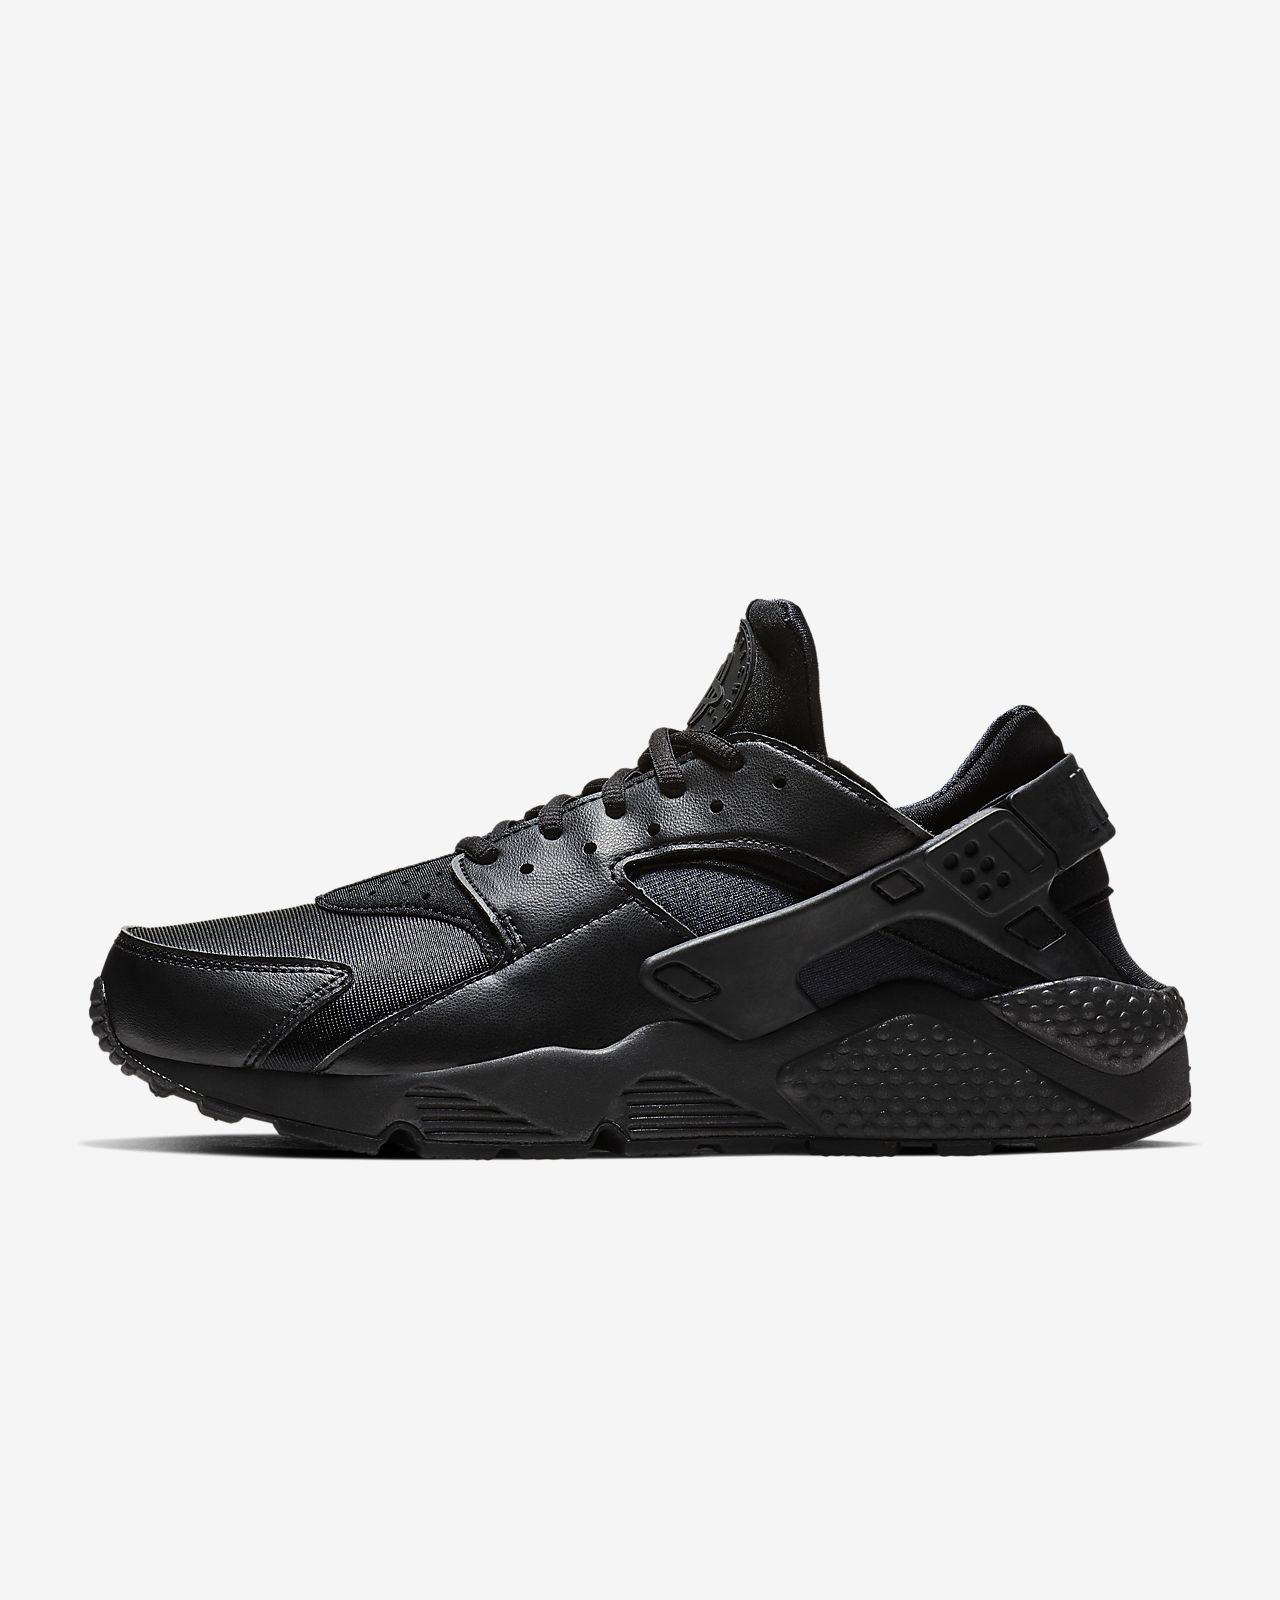 6c533bb55fe21 Nike Air Huarache Women s Shoe. Nike.com